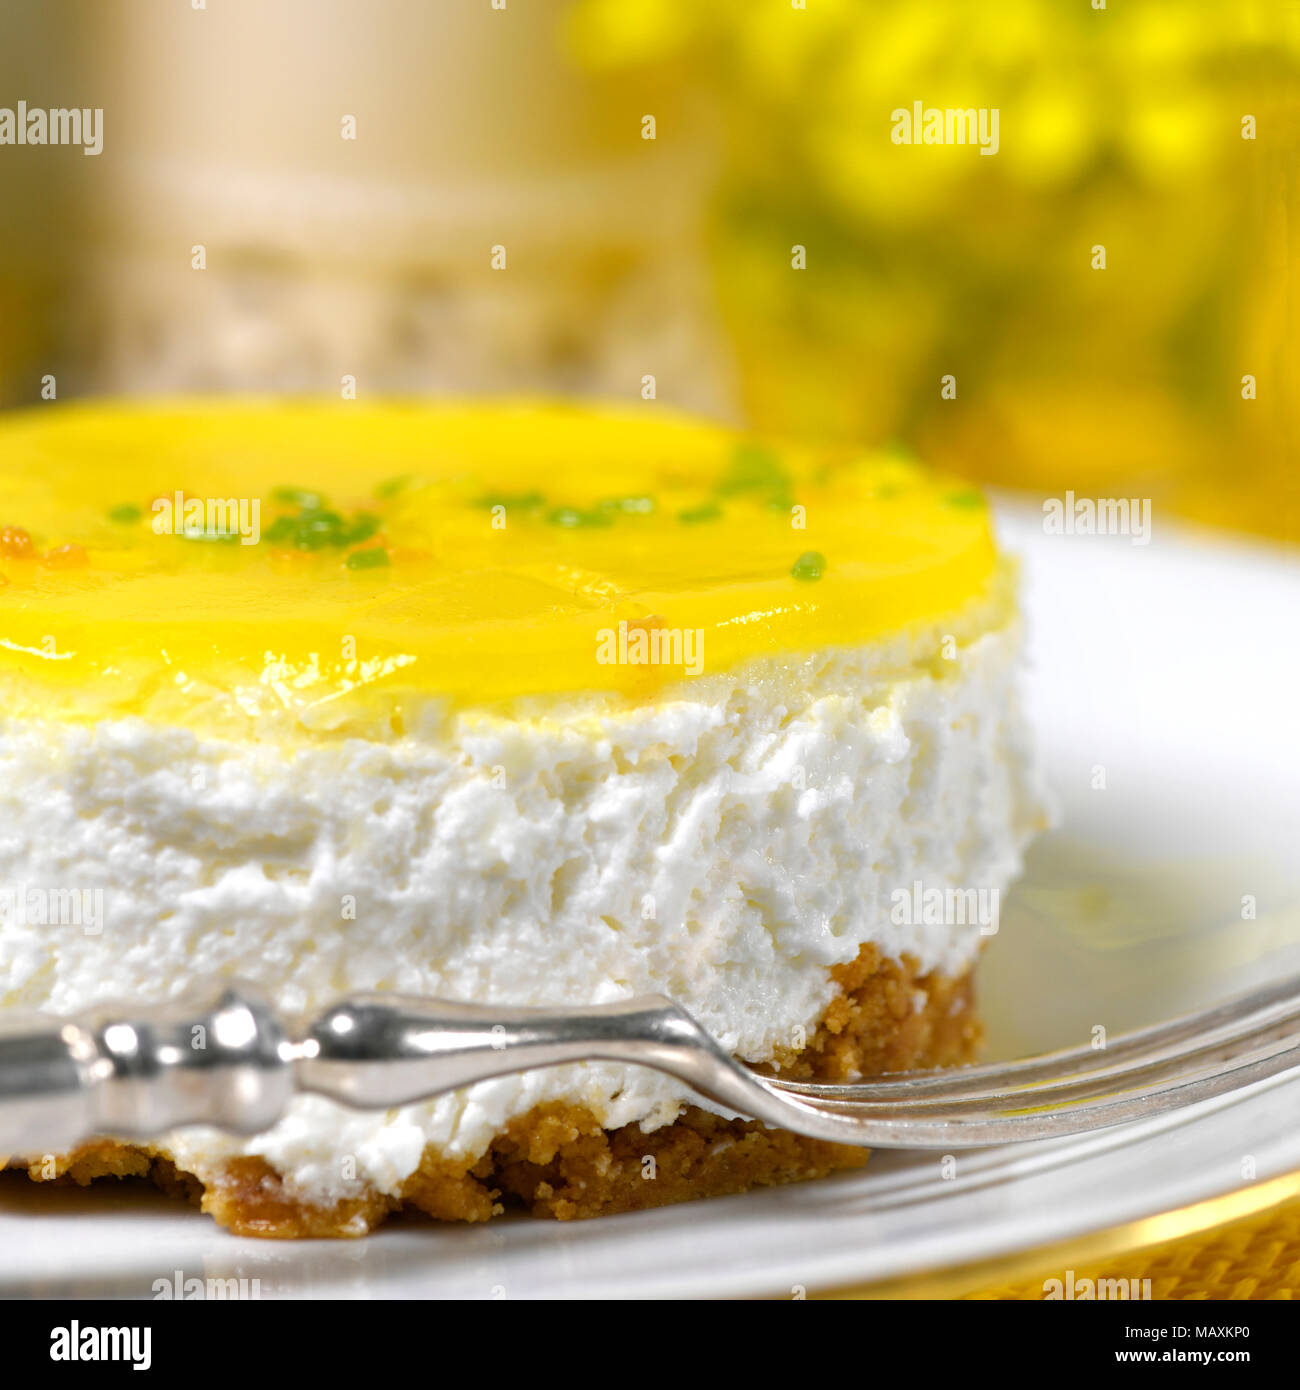 restaurant setting of a lemon mousse cheesecake a silver fork on a white plate soft background with  yellow flowers and to ad copy space - Stock Image